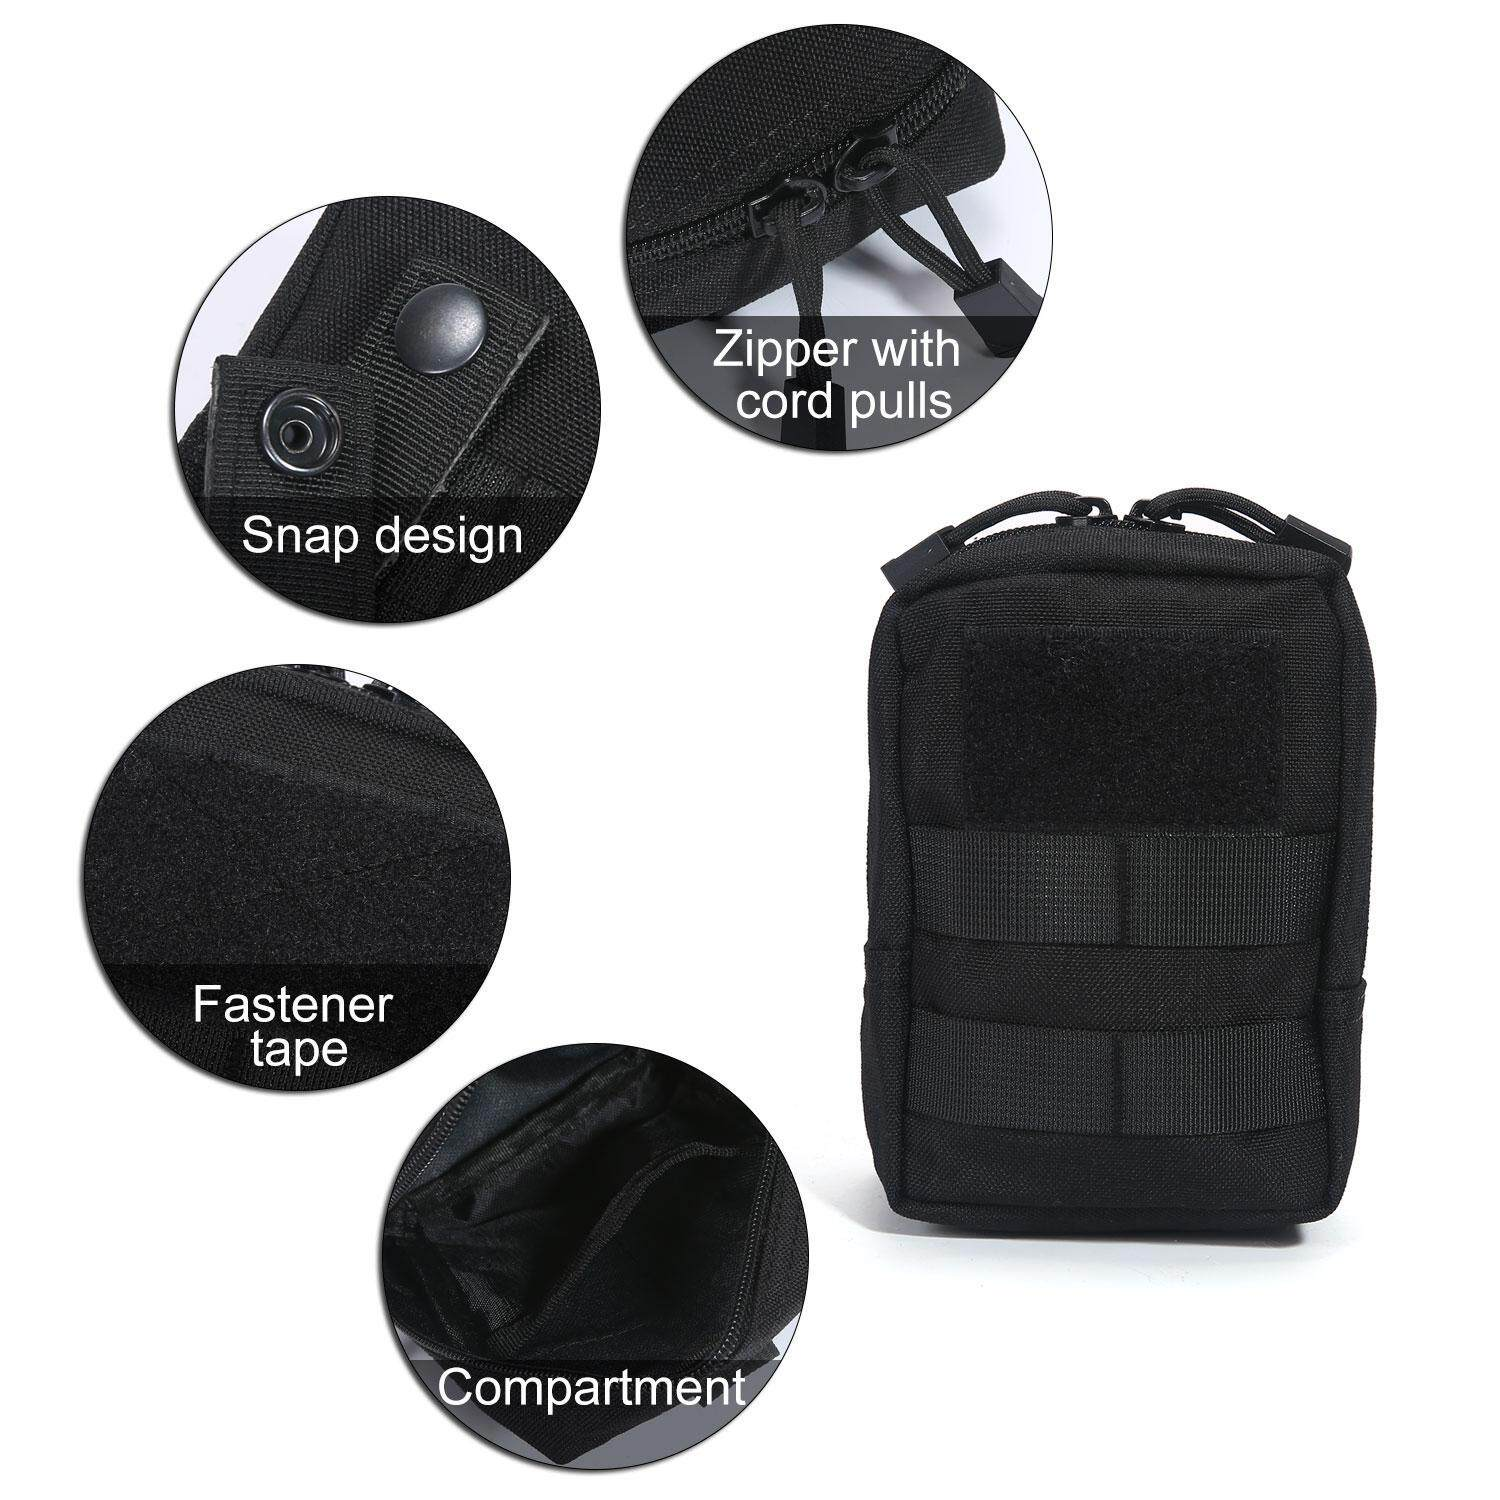 Layopo Tactical Admin Pouch Compact Edc Utility Gadget Gear Pouch Military Carry Accessory Belt Hanging Waist Bag By Layopo.